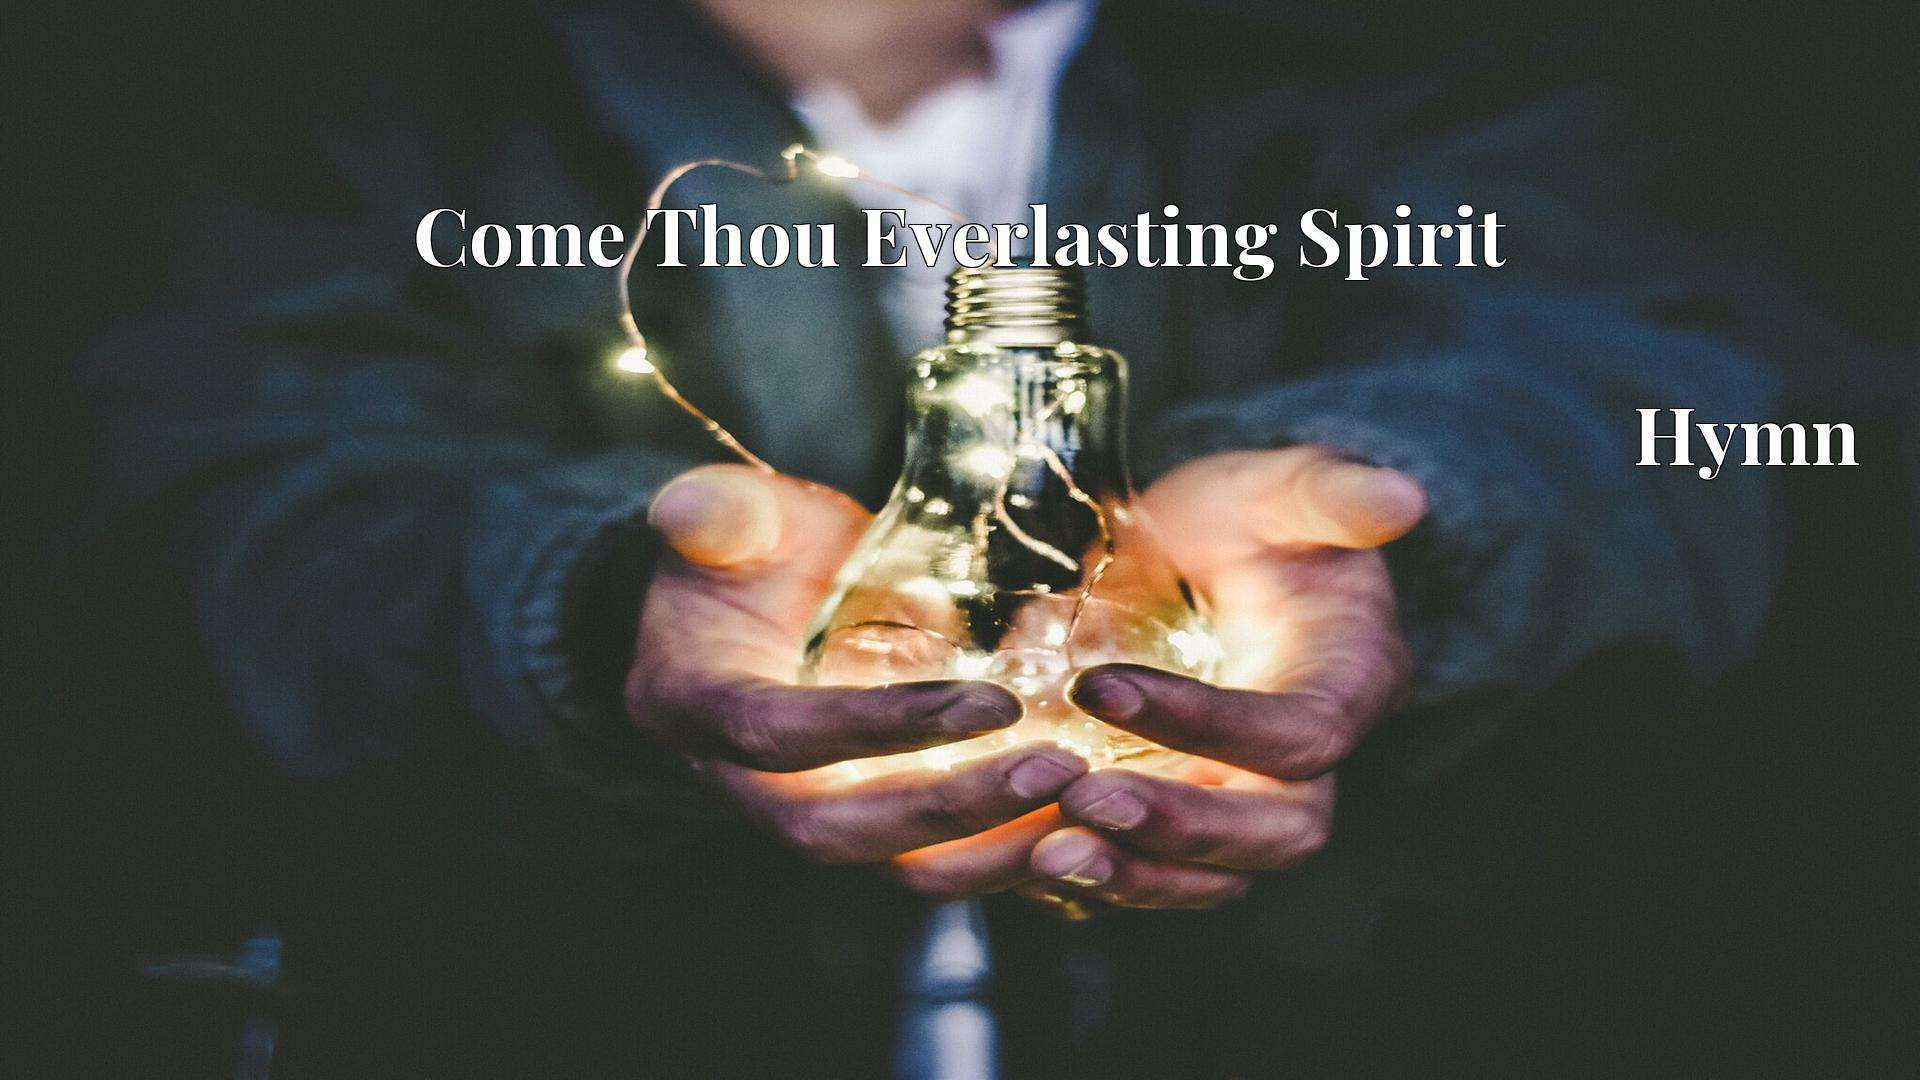 Come Thou Everlasting Spirit - Hymn